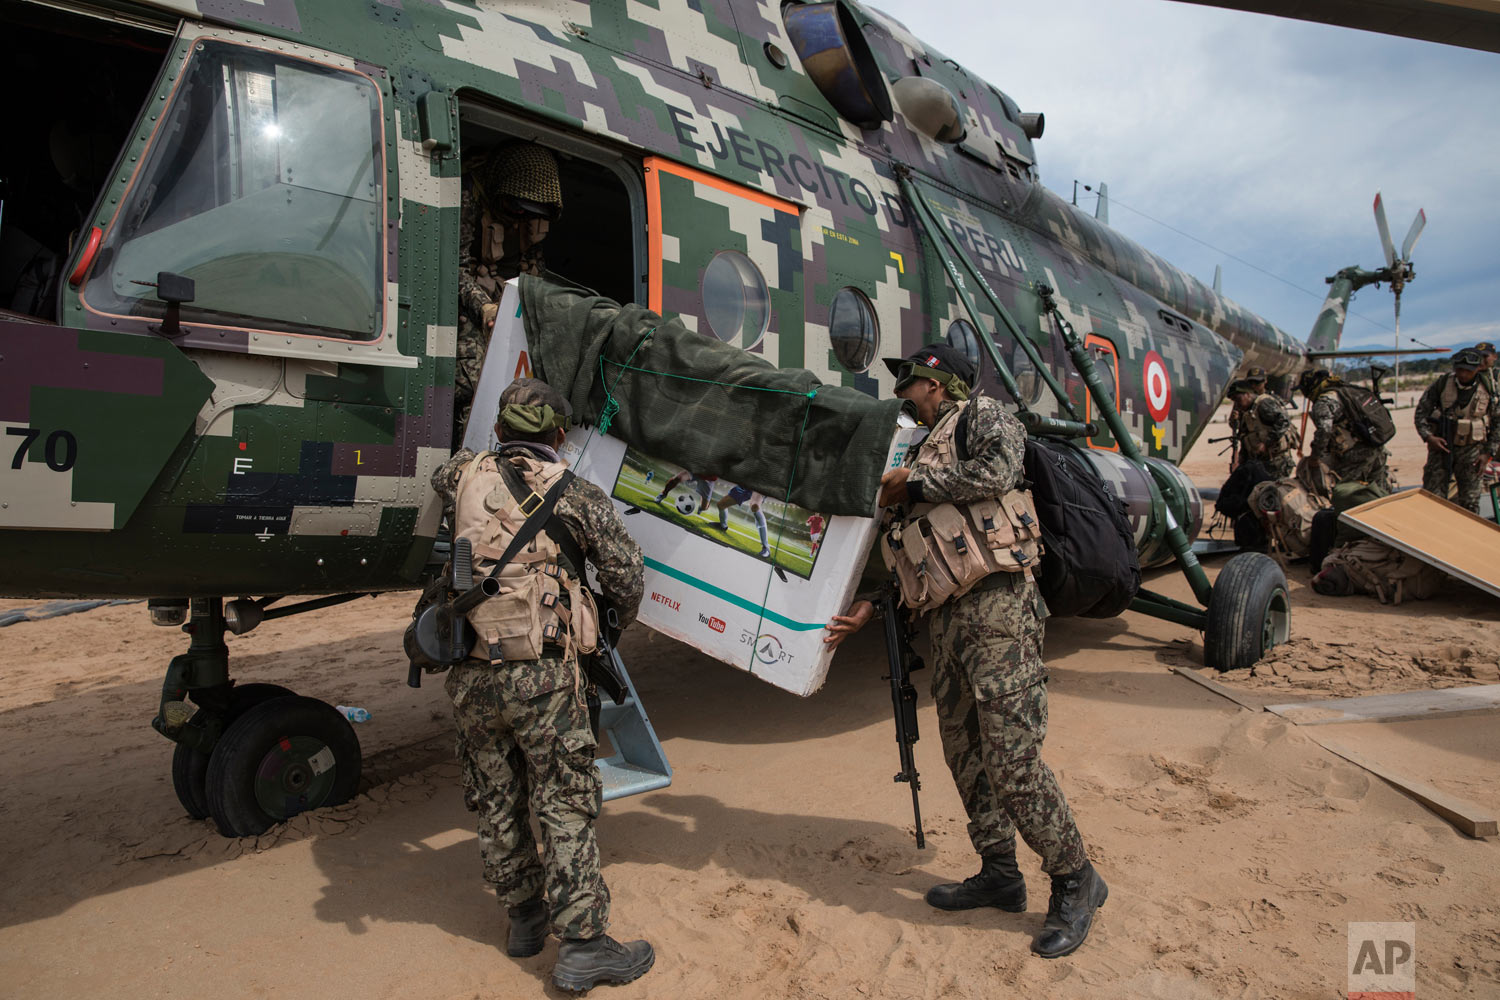 In this April 1, 2019 photo, returning to their home base soldiers load their television in to a military helicopter, on a makeshift airstrip at the Balata military and police base in Peru's Tambopata province. (AP Photo/Rodrigo Abd)